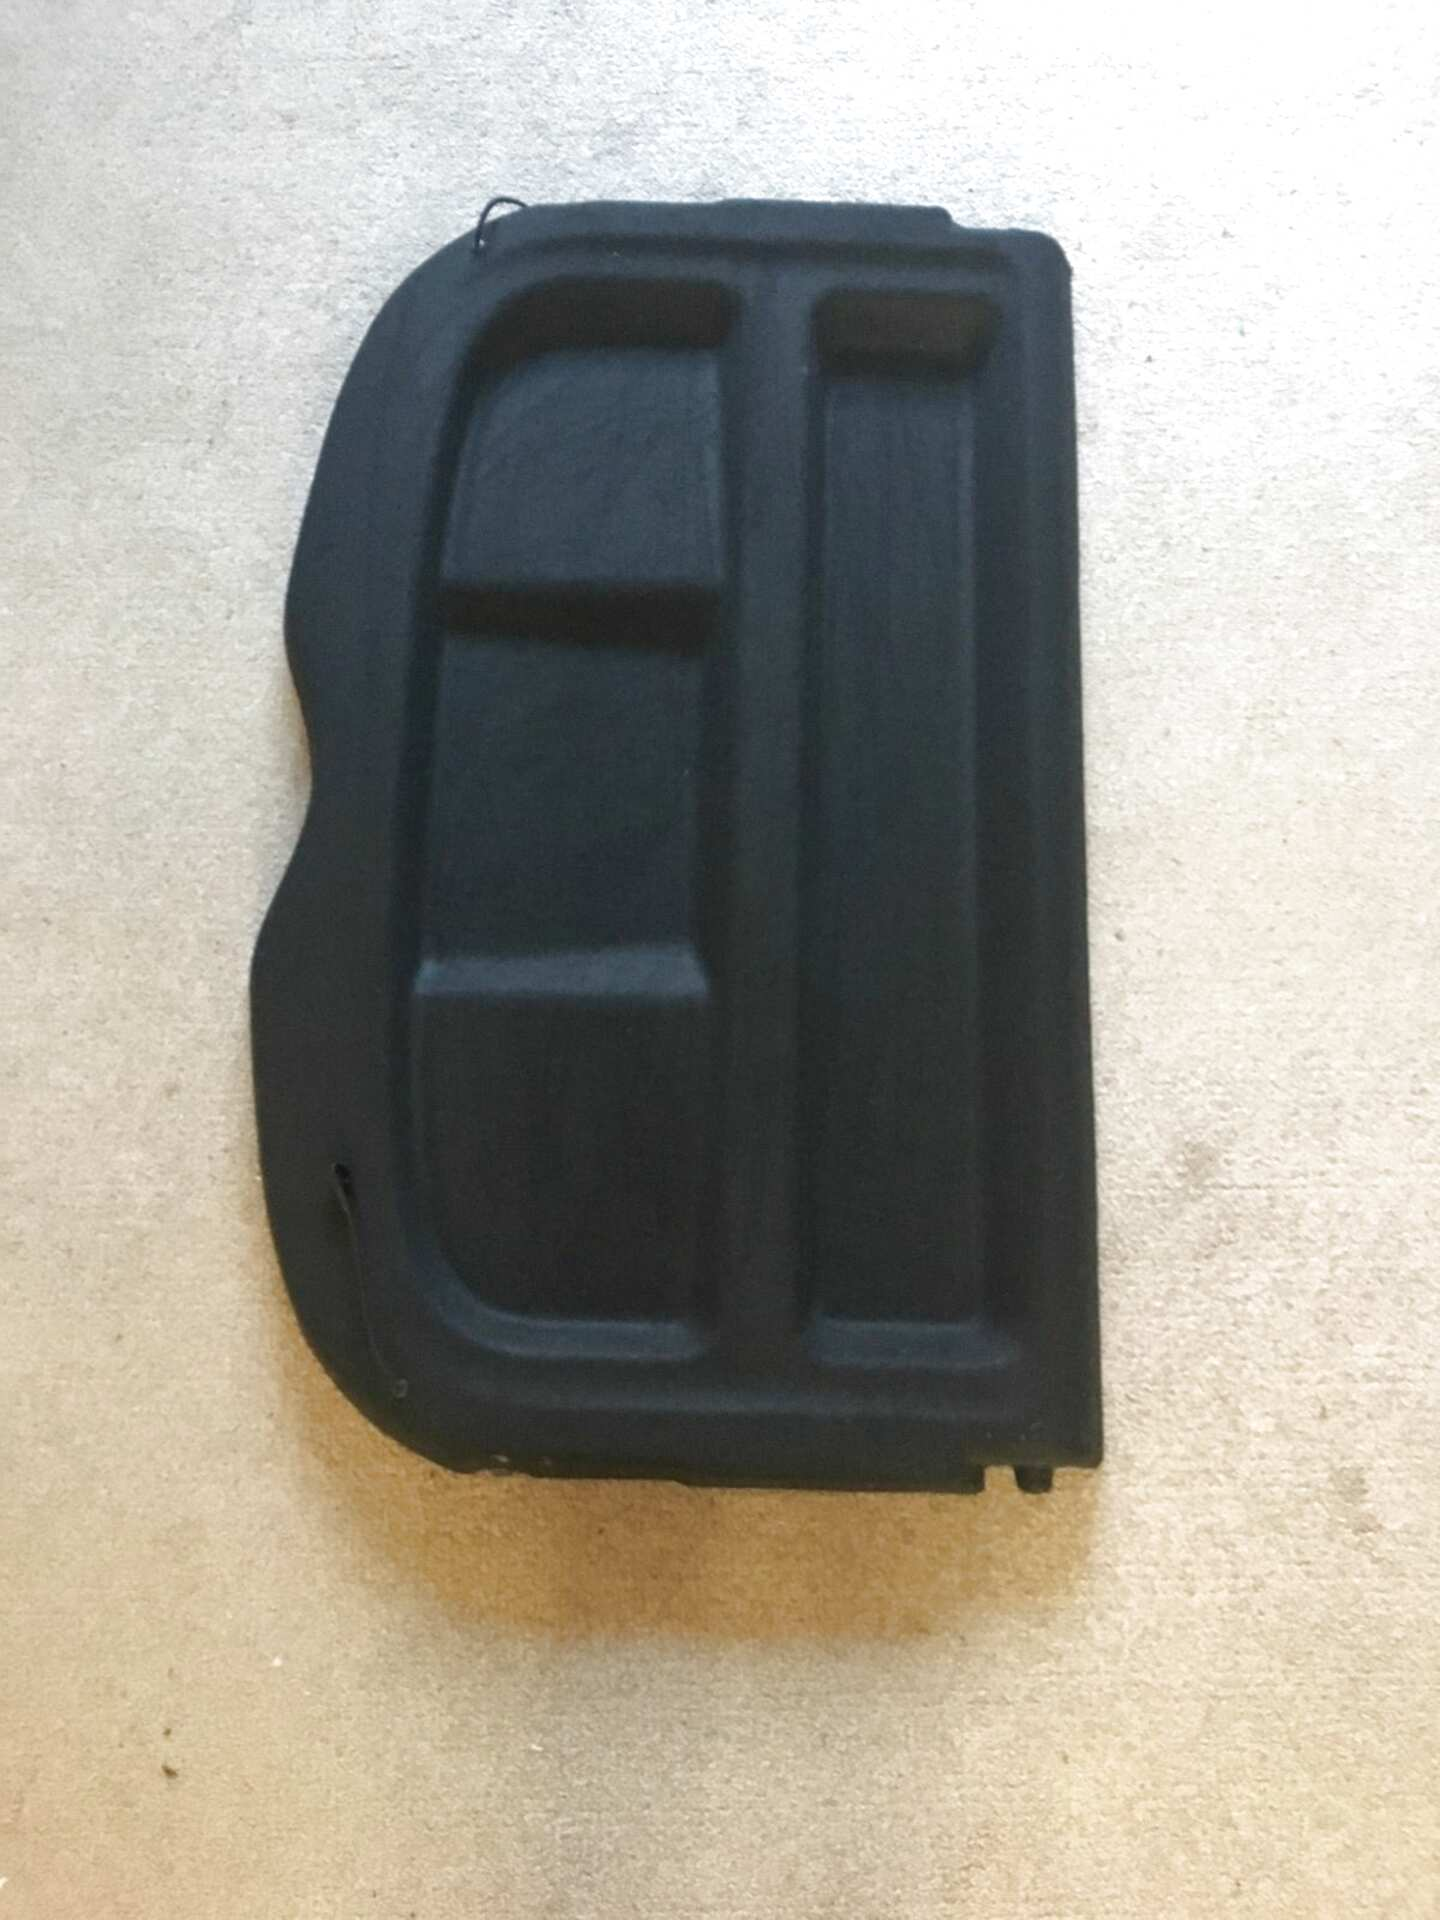 Nissan Qashqai Parcel Shelf For Sale In Uk View 45 Ads